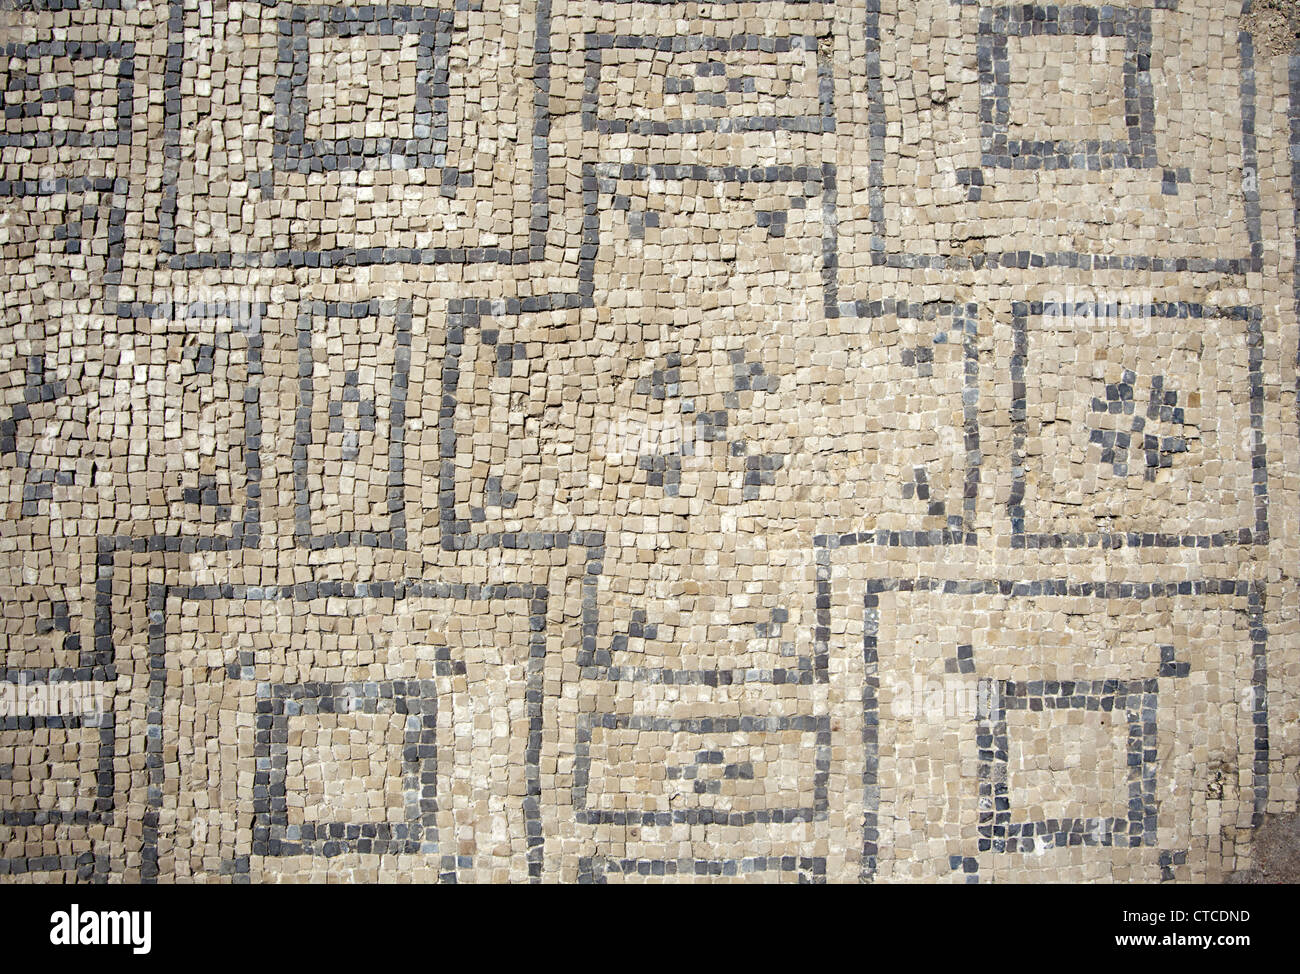 floor tiles stockfotos floor tiles bilder alamy. Black Bedroom Furniture Sets. Home Design Ideas